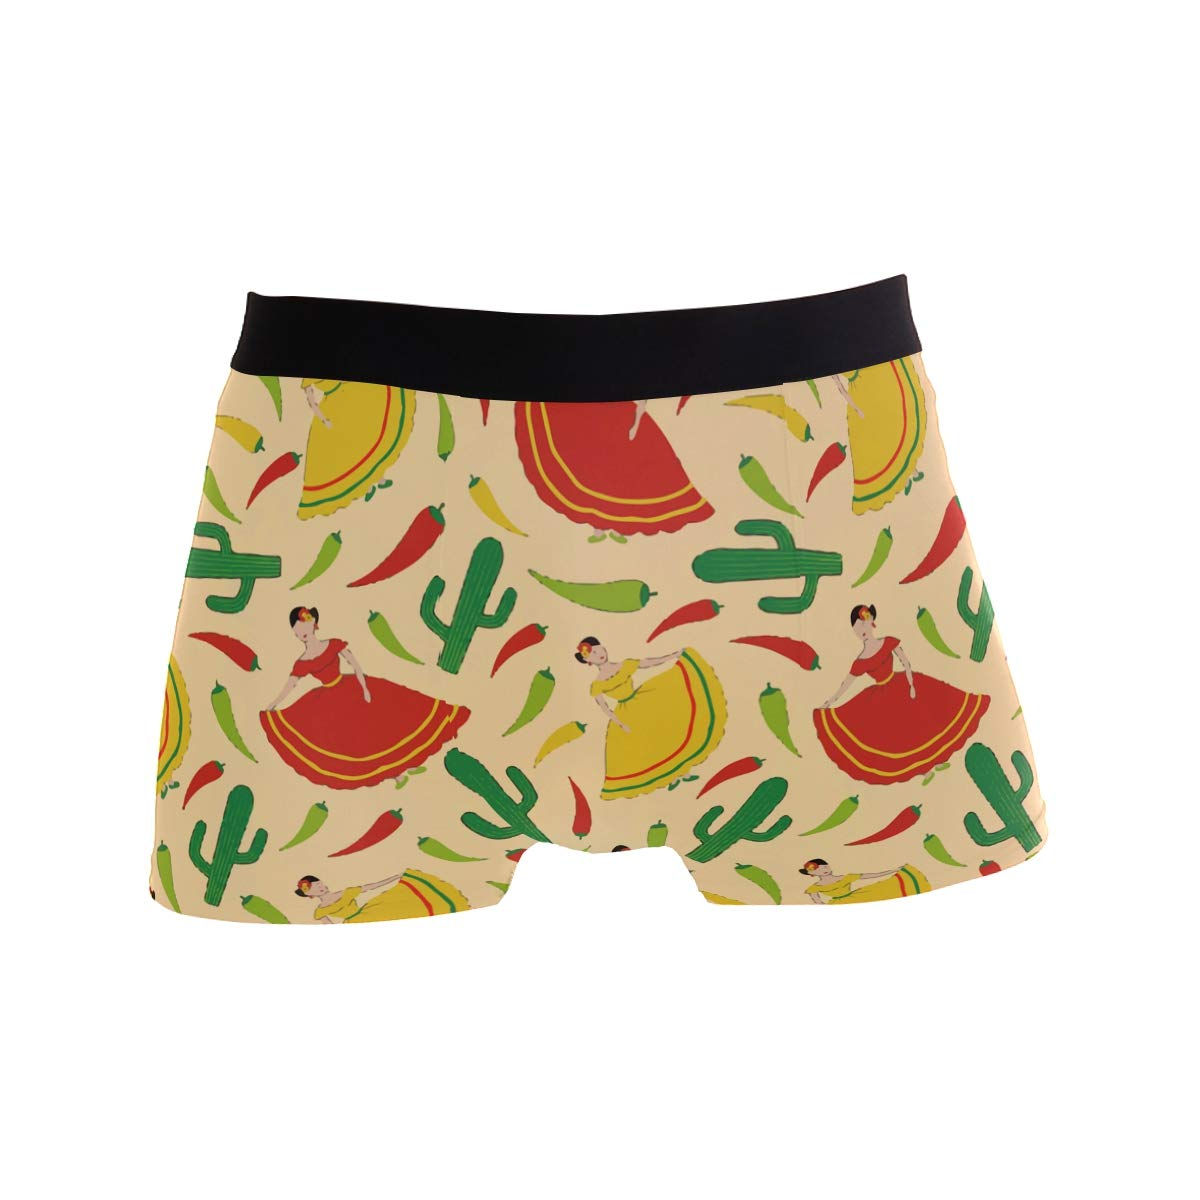 Charlley Lee Mens Soft Breathable Yellow Mexican Chili and Cactus Underwear Boxer Briefs